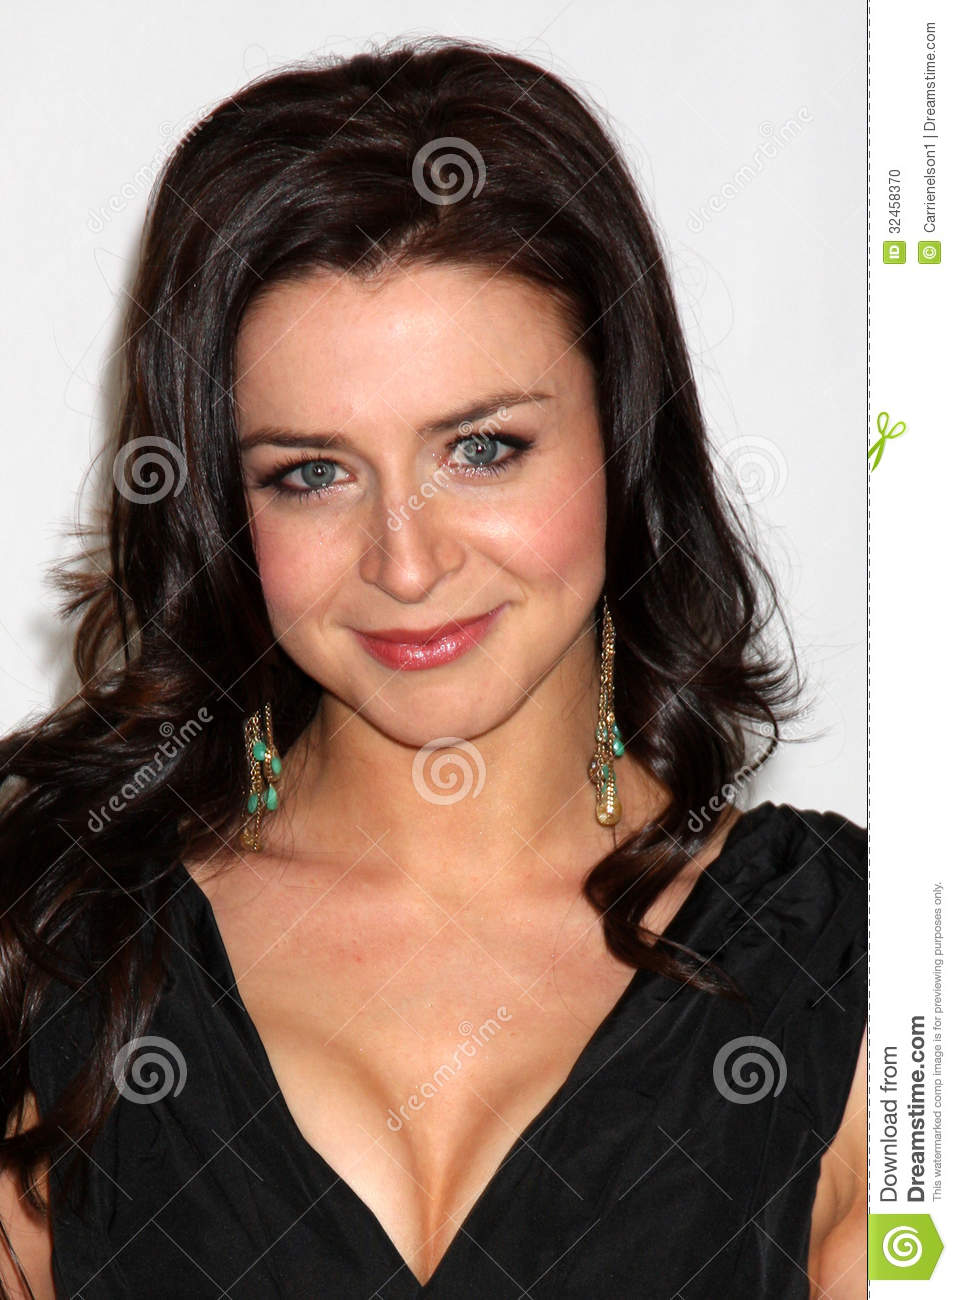 caterina scorsone private practice